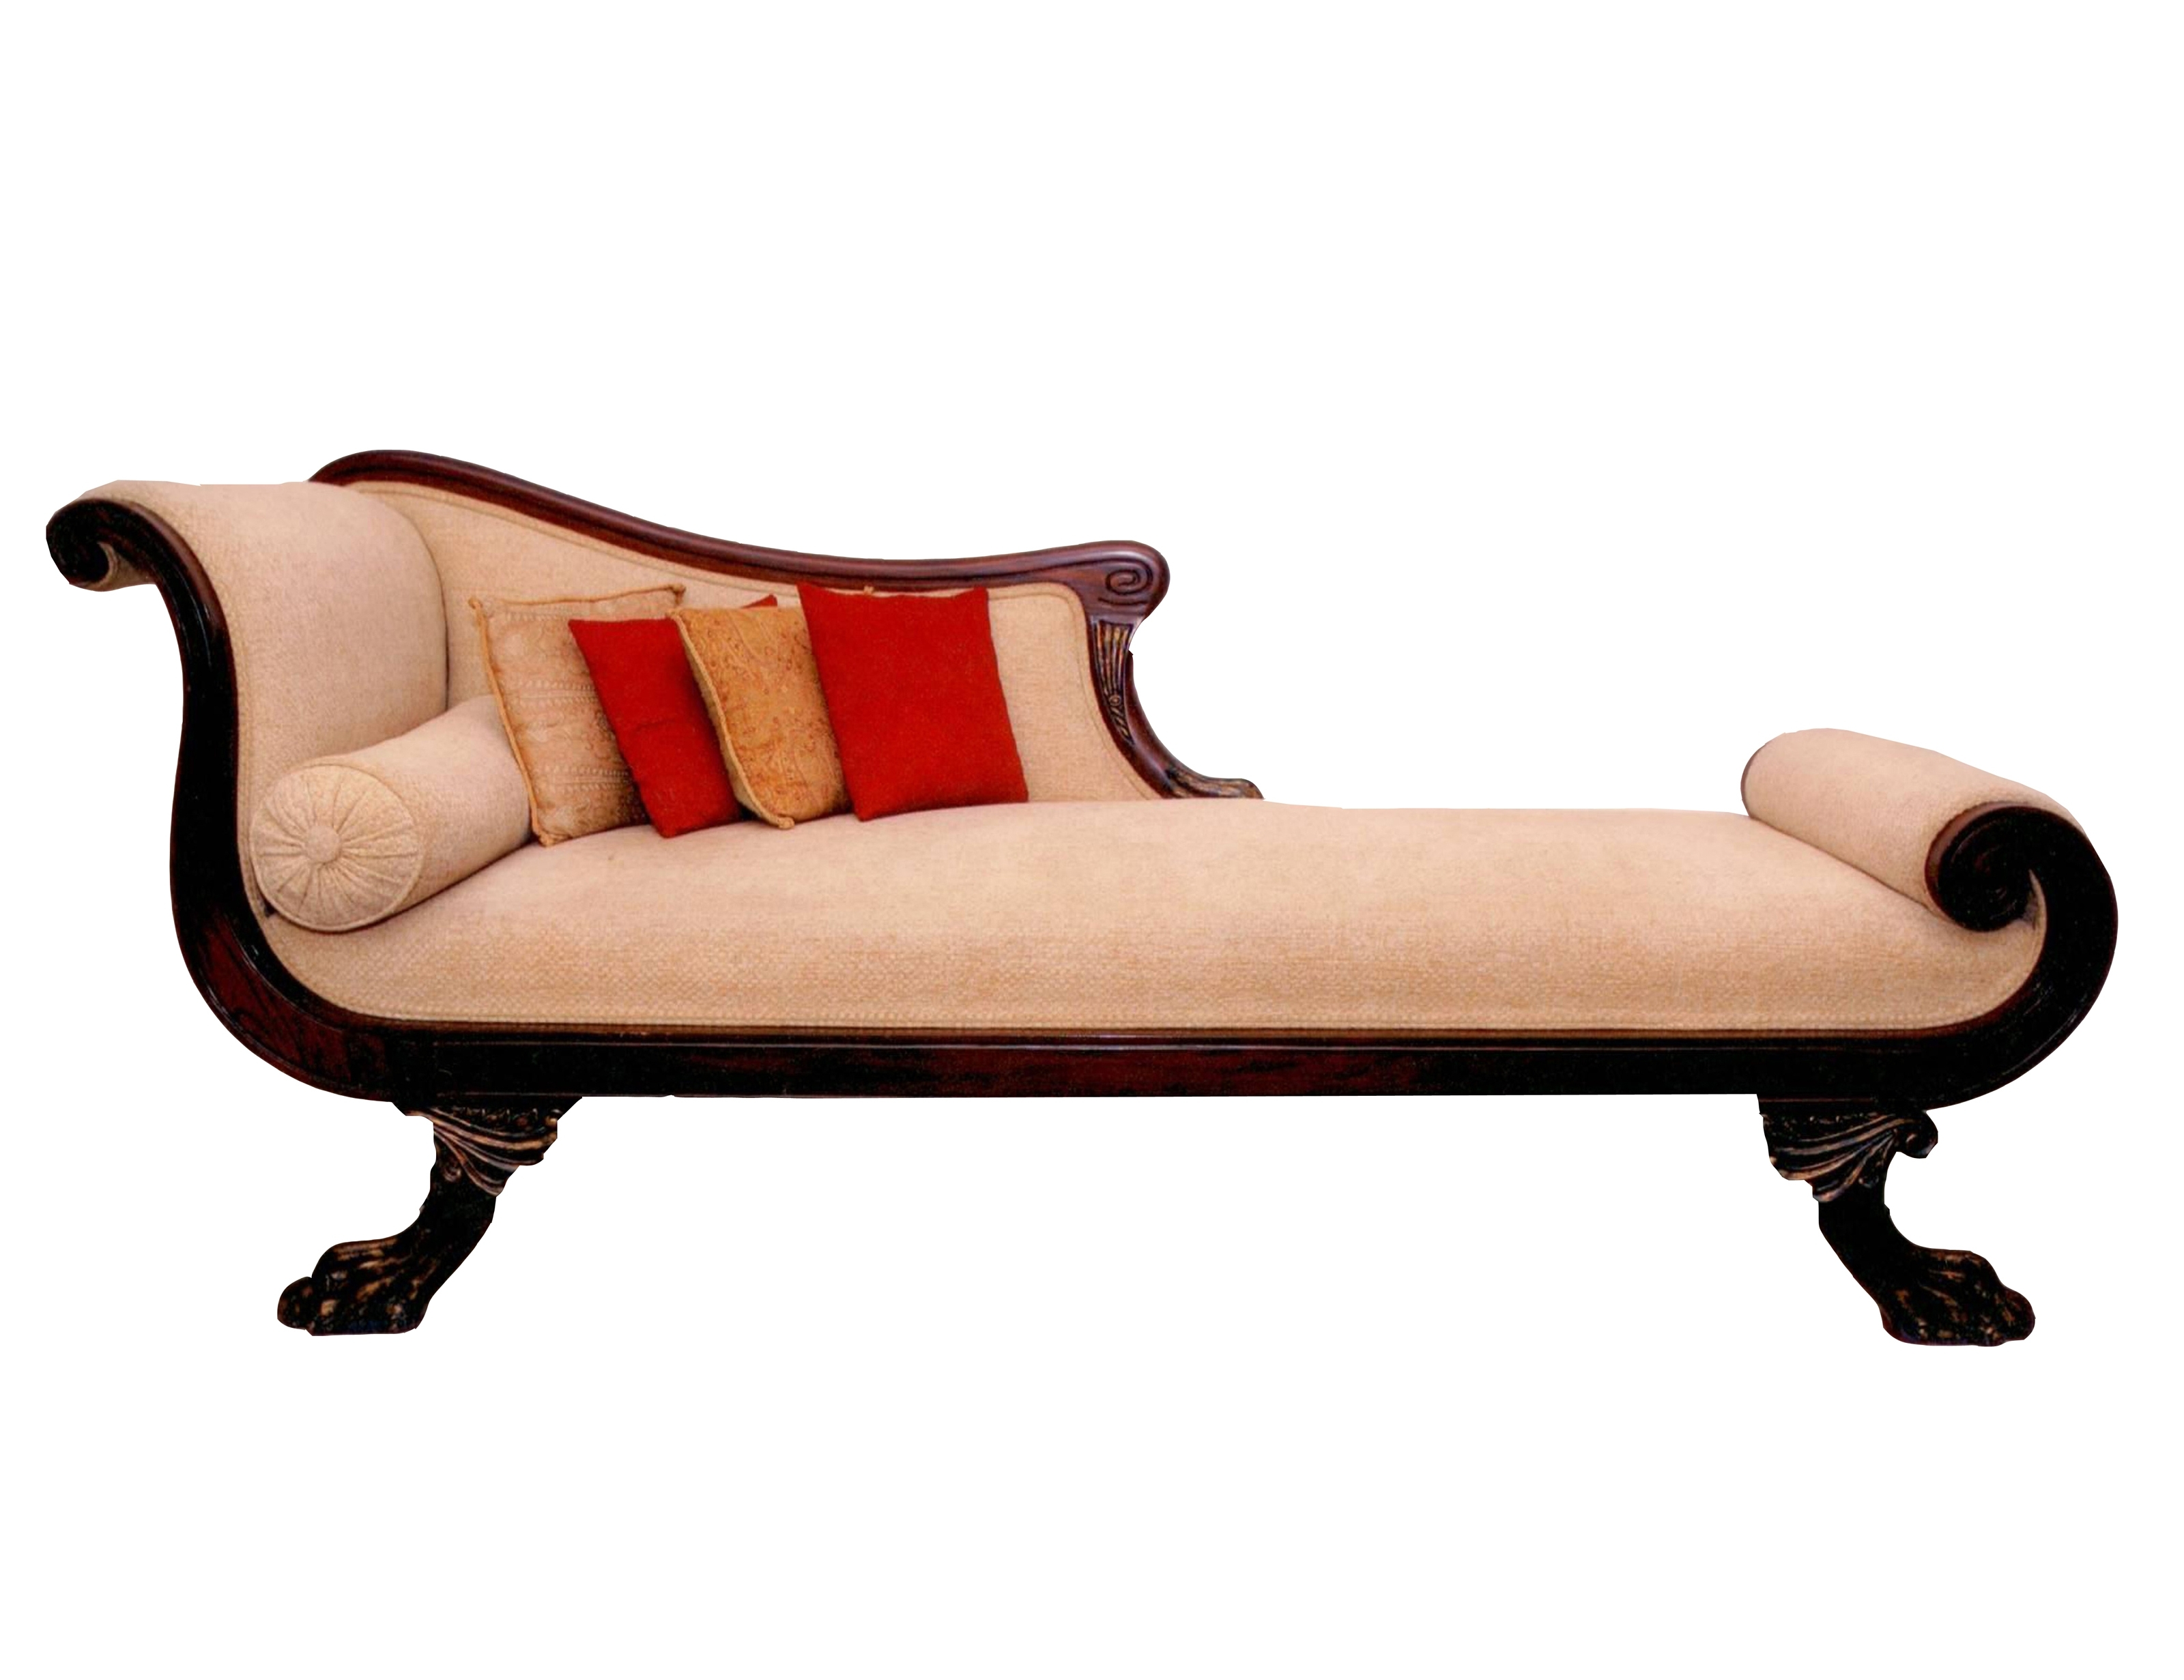 Beige Chaise Lounges For Best And Newest Furniture: Interesting Beige Leather Chaise Lounge With Dark Wood (View 9 of 15)